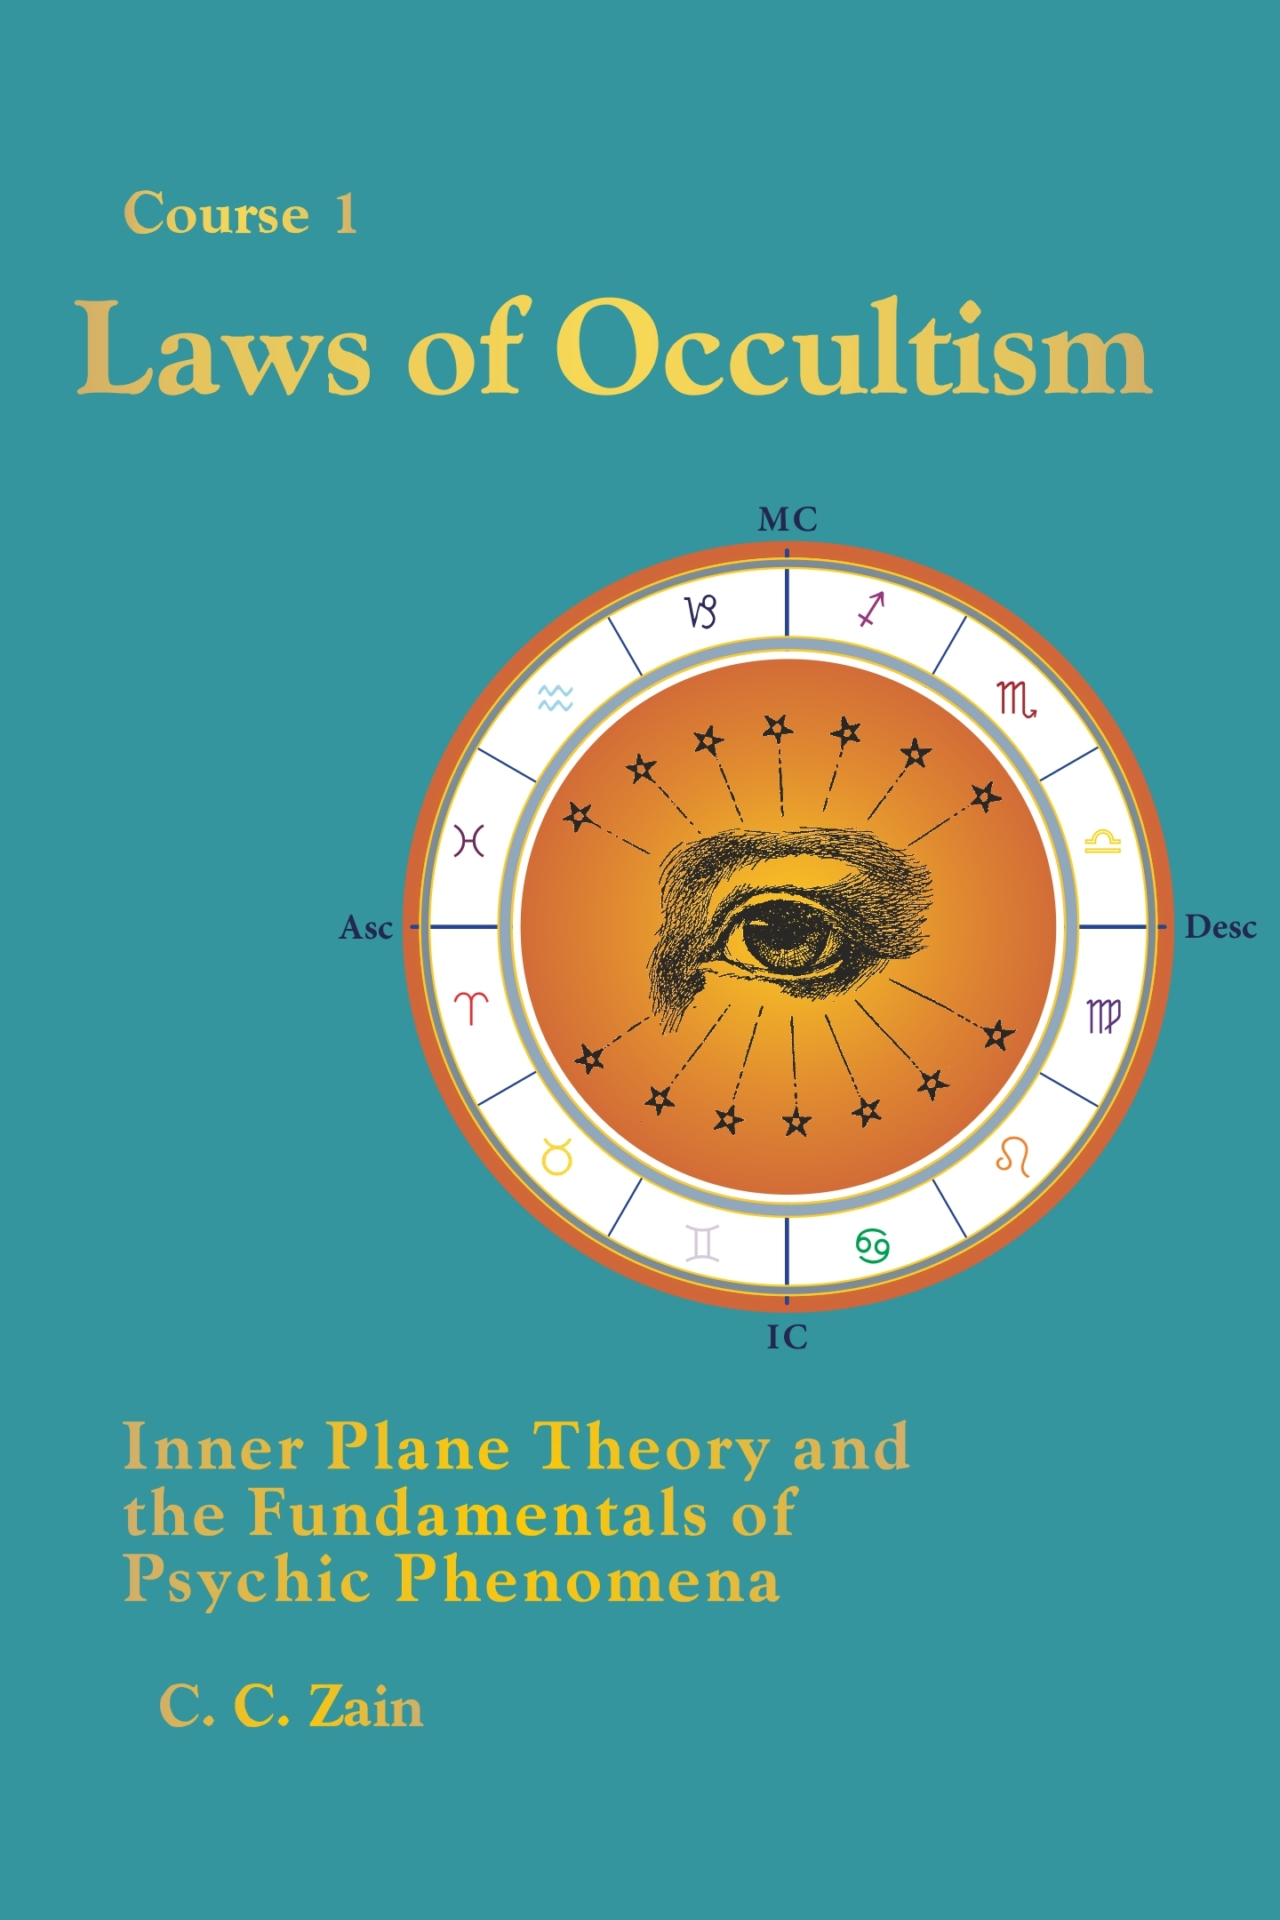 https://study.academyofhermeticarts.org/wp-content/uploads/2019/10/01_Laws_of_Occultism_eBook_Cover-1280x1920.jpg